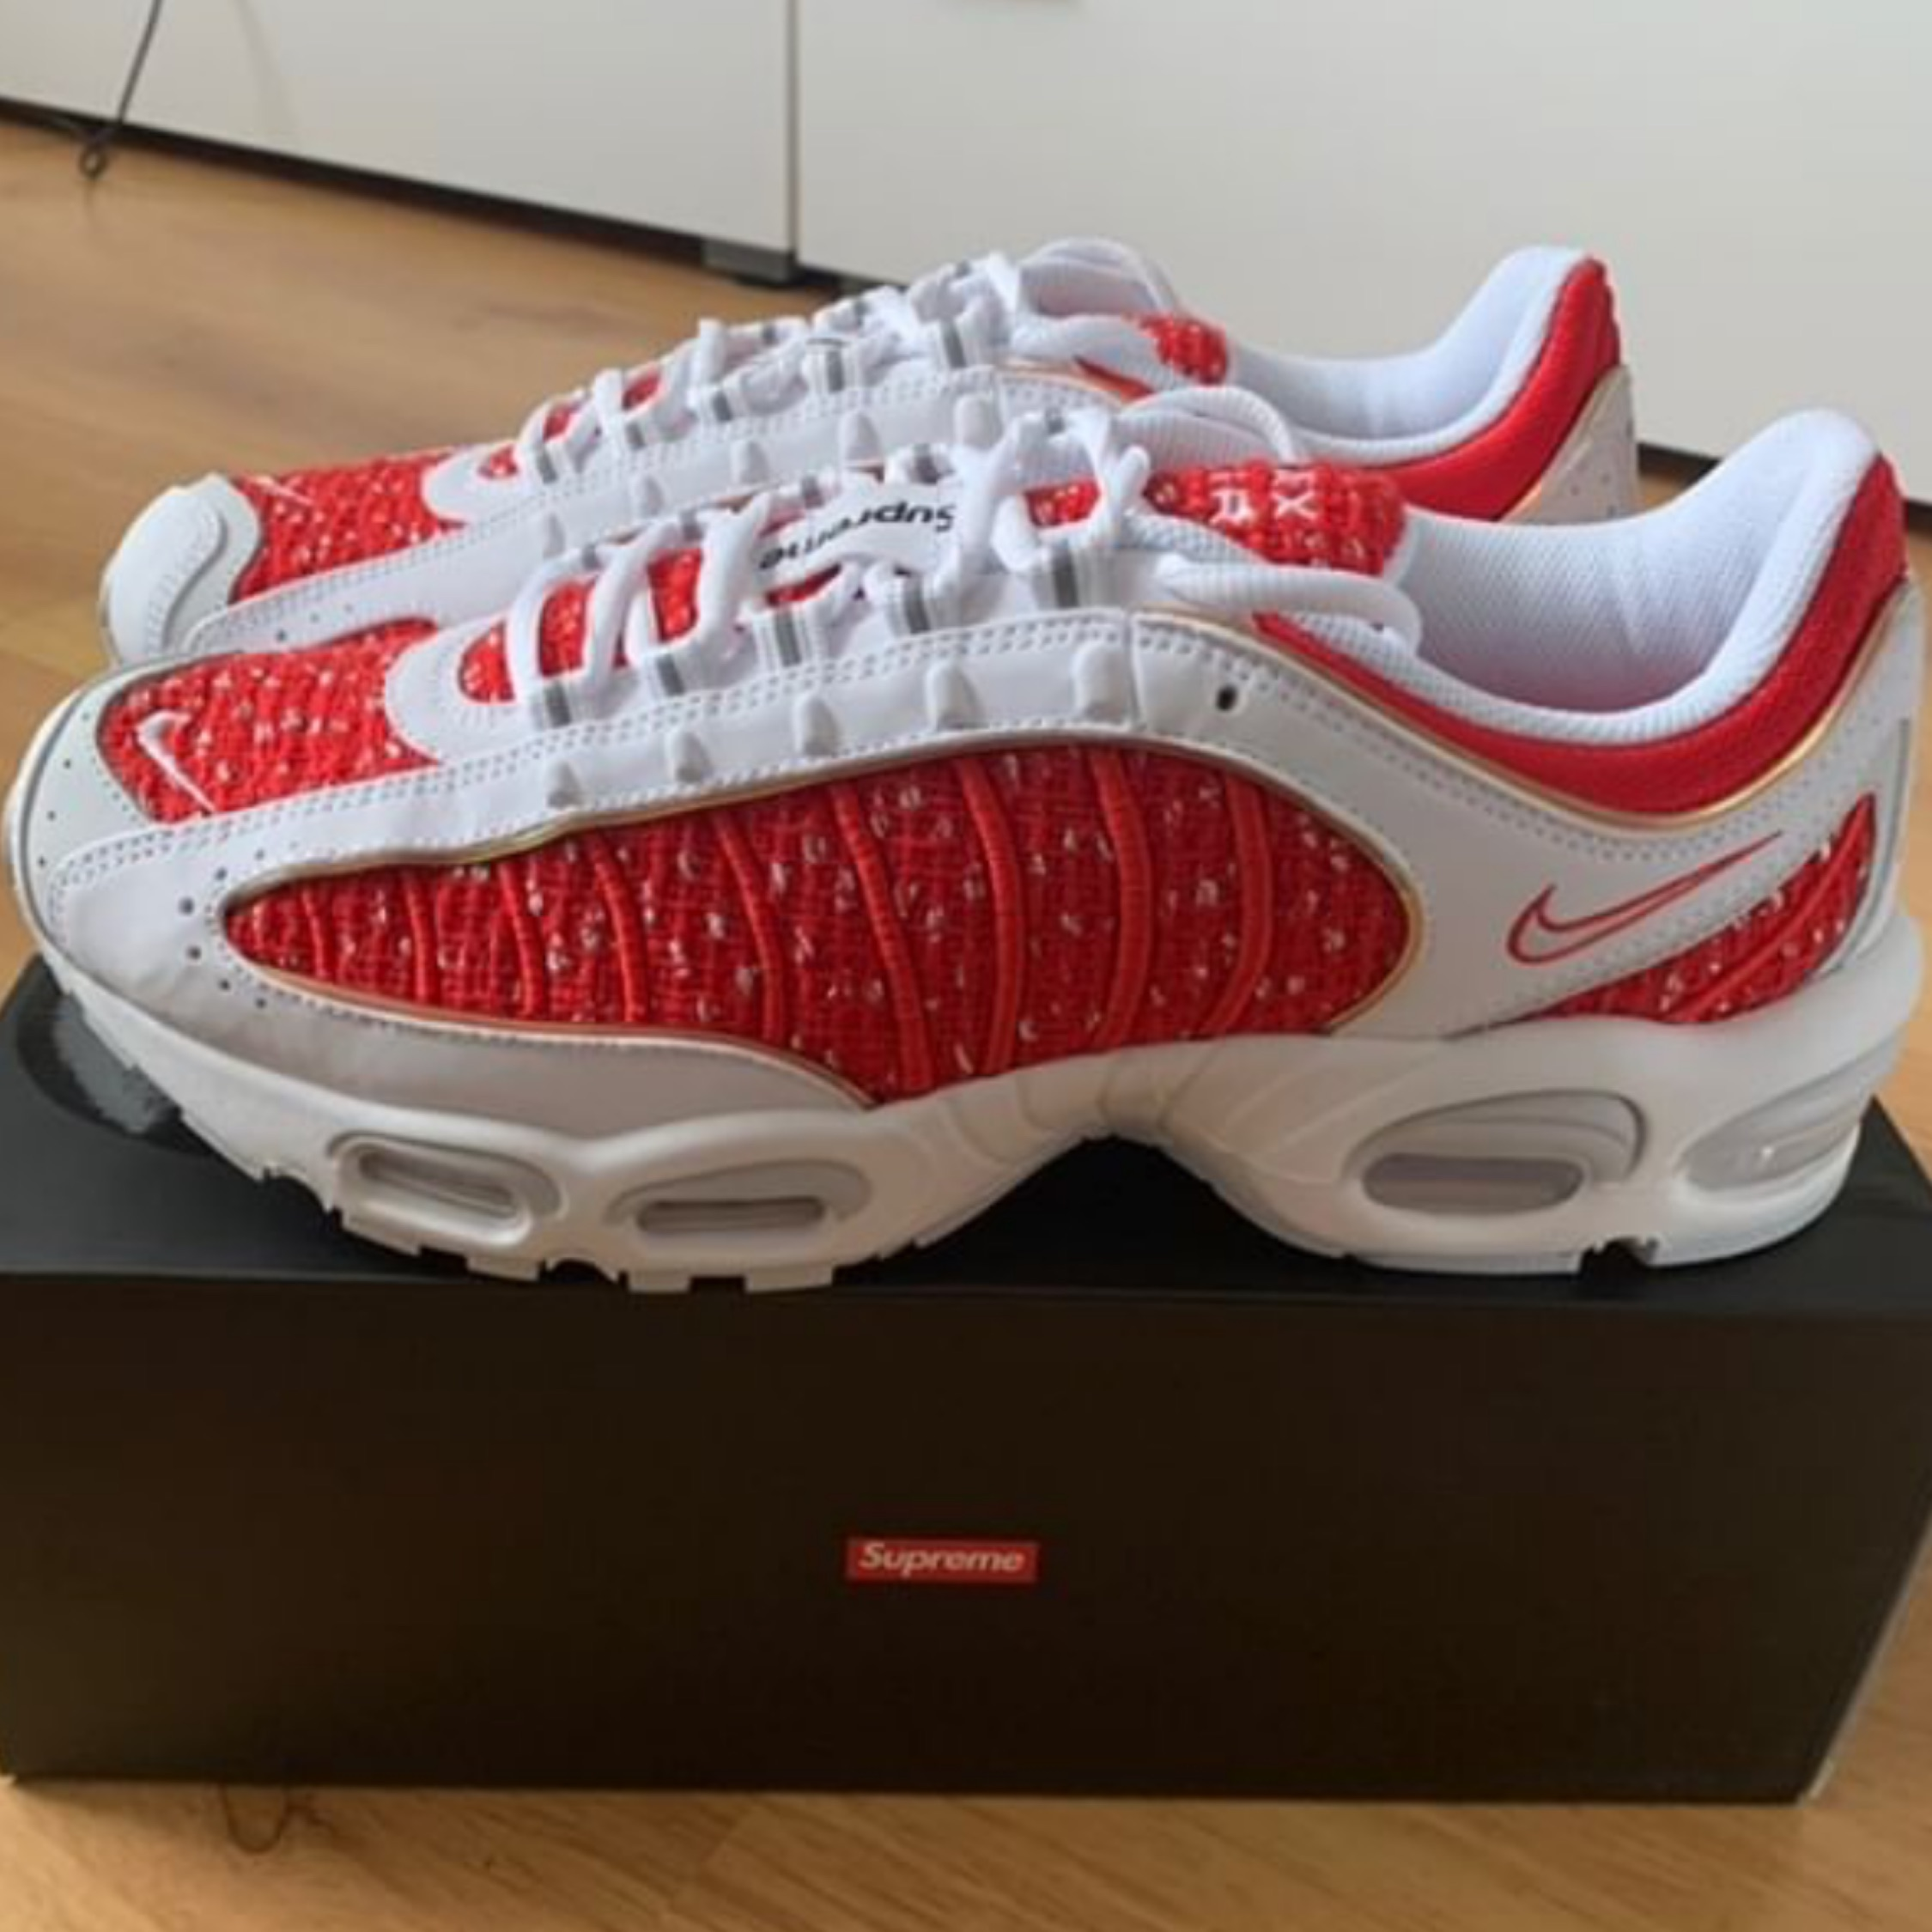 Ss19 Supreme X Nike Air Max Tailwind 4